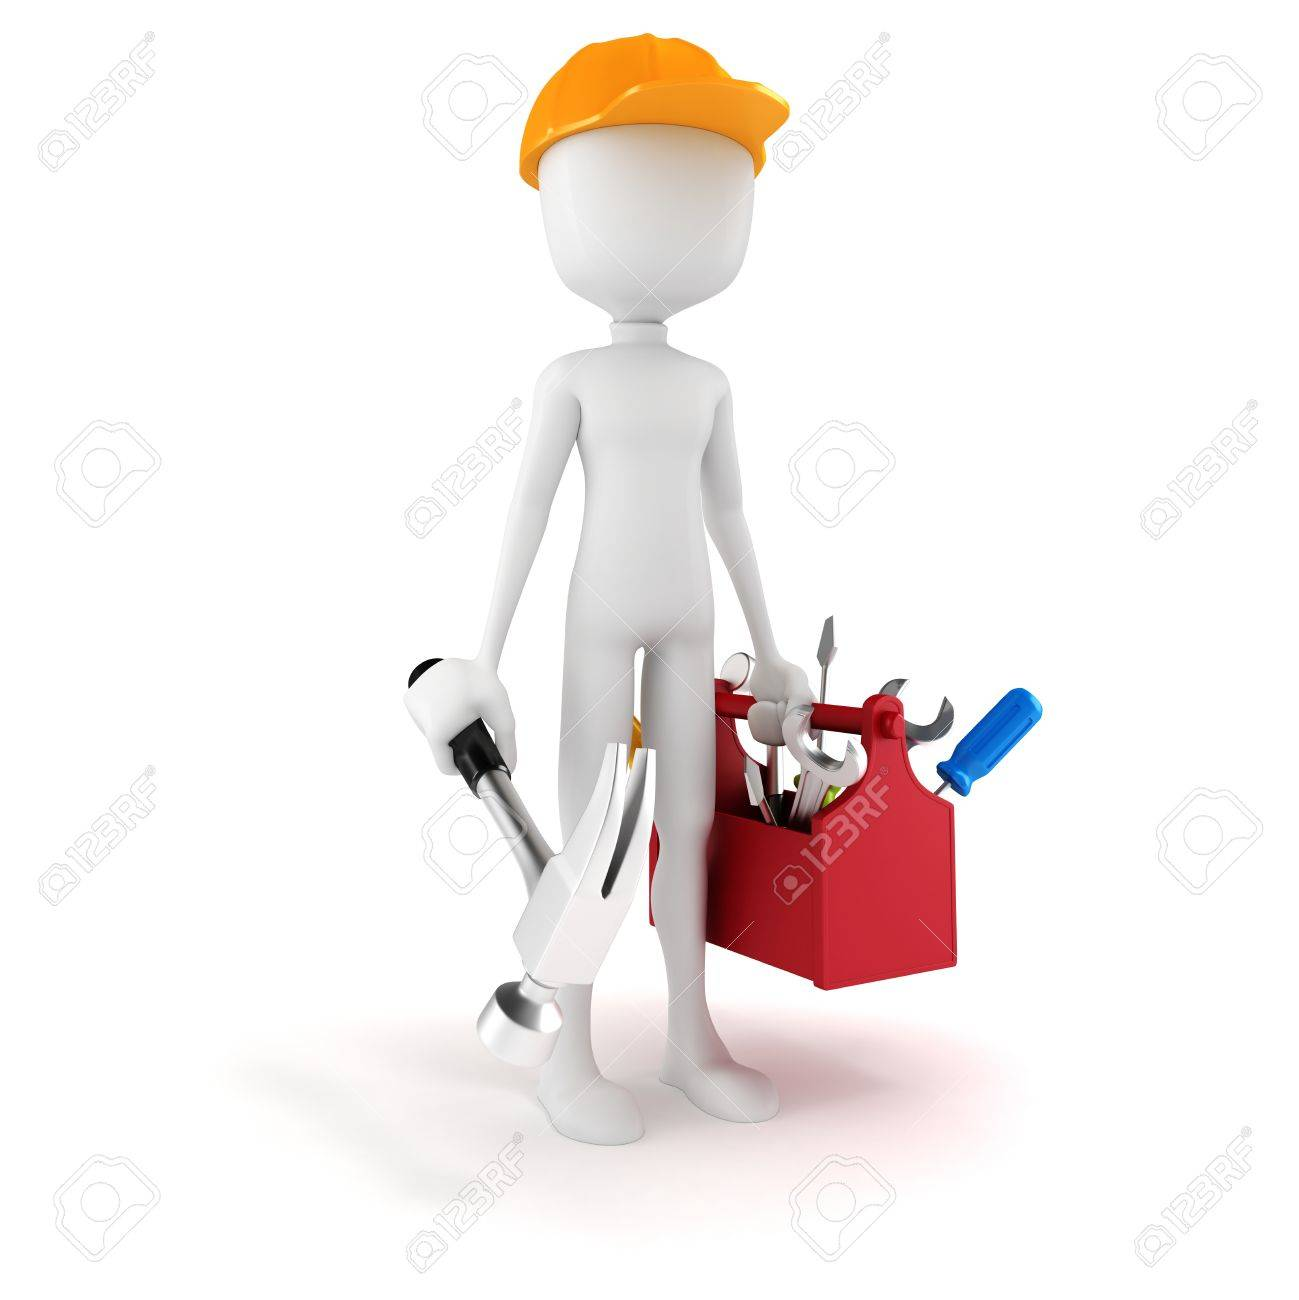 3d man with tools box on white background Stock Photo - 18593578